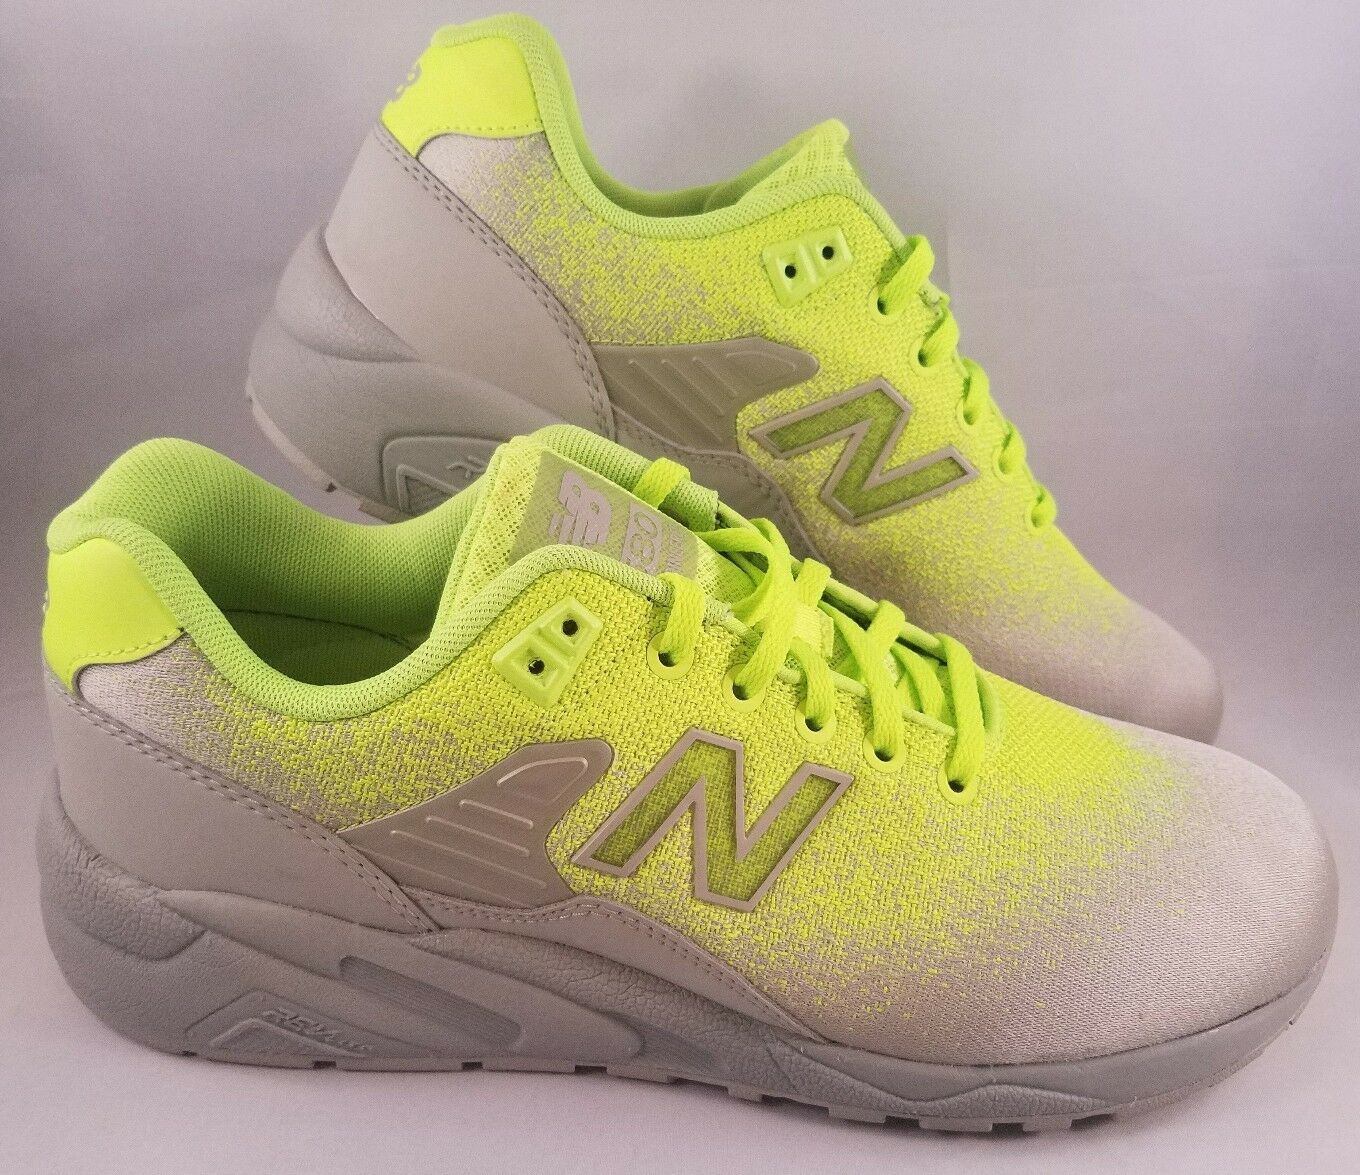 New Balance 580 Re-Engineered Running shoes Mens Size 9 MRT580JE Lime Green Grey